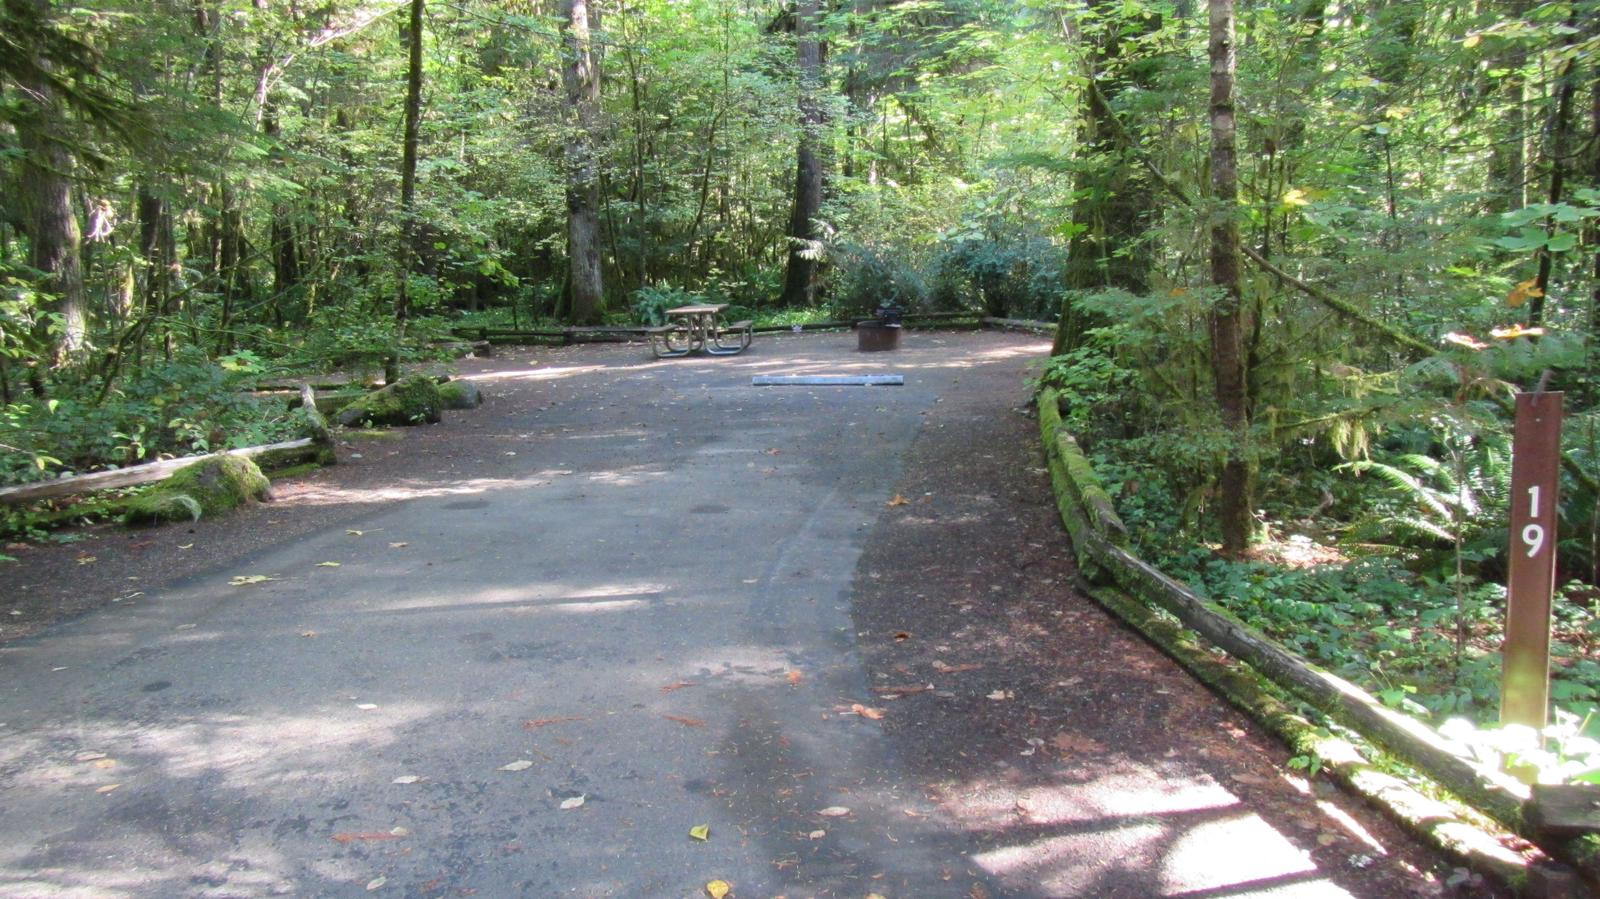 Parking spur and whole campsite